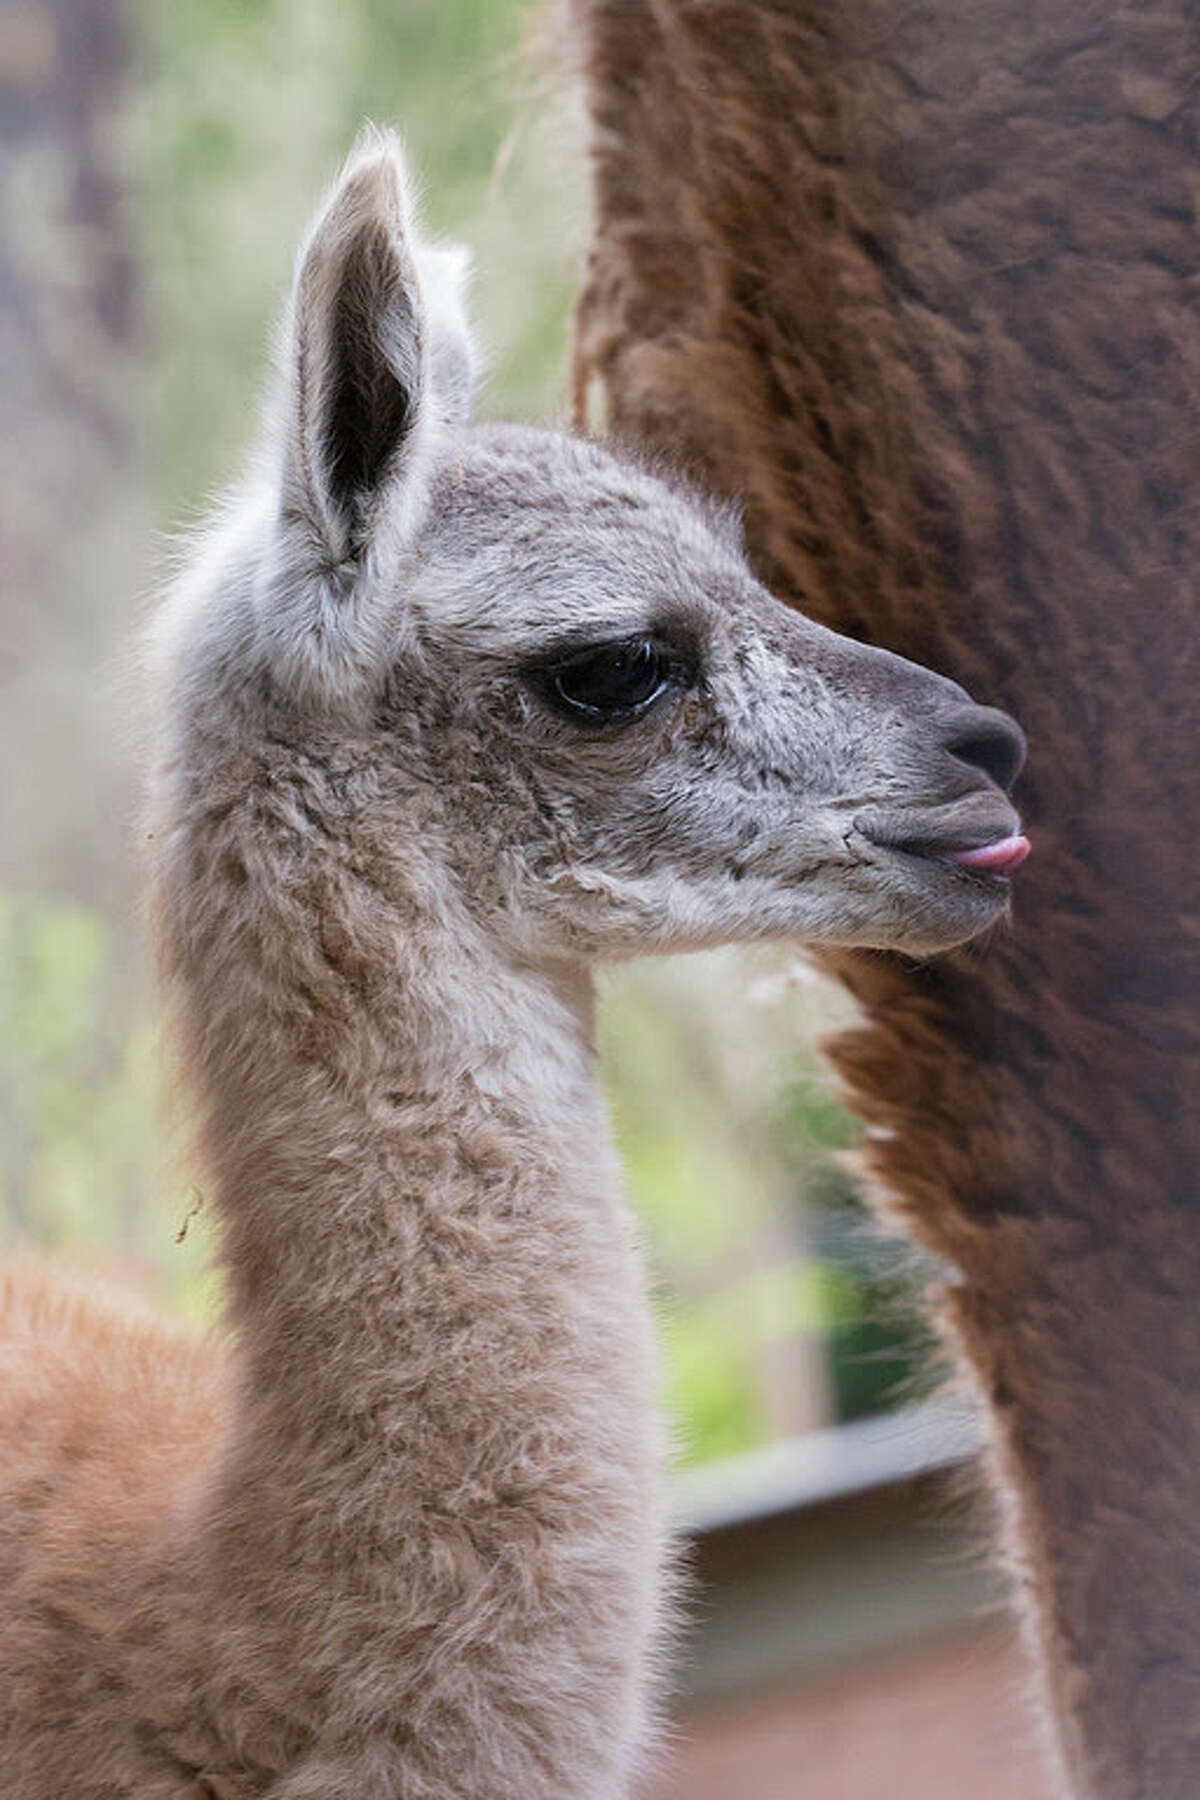 Young Guanaco. Photo by Marianne Hale